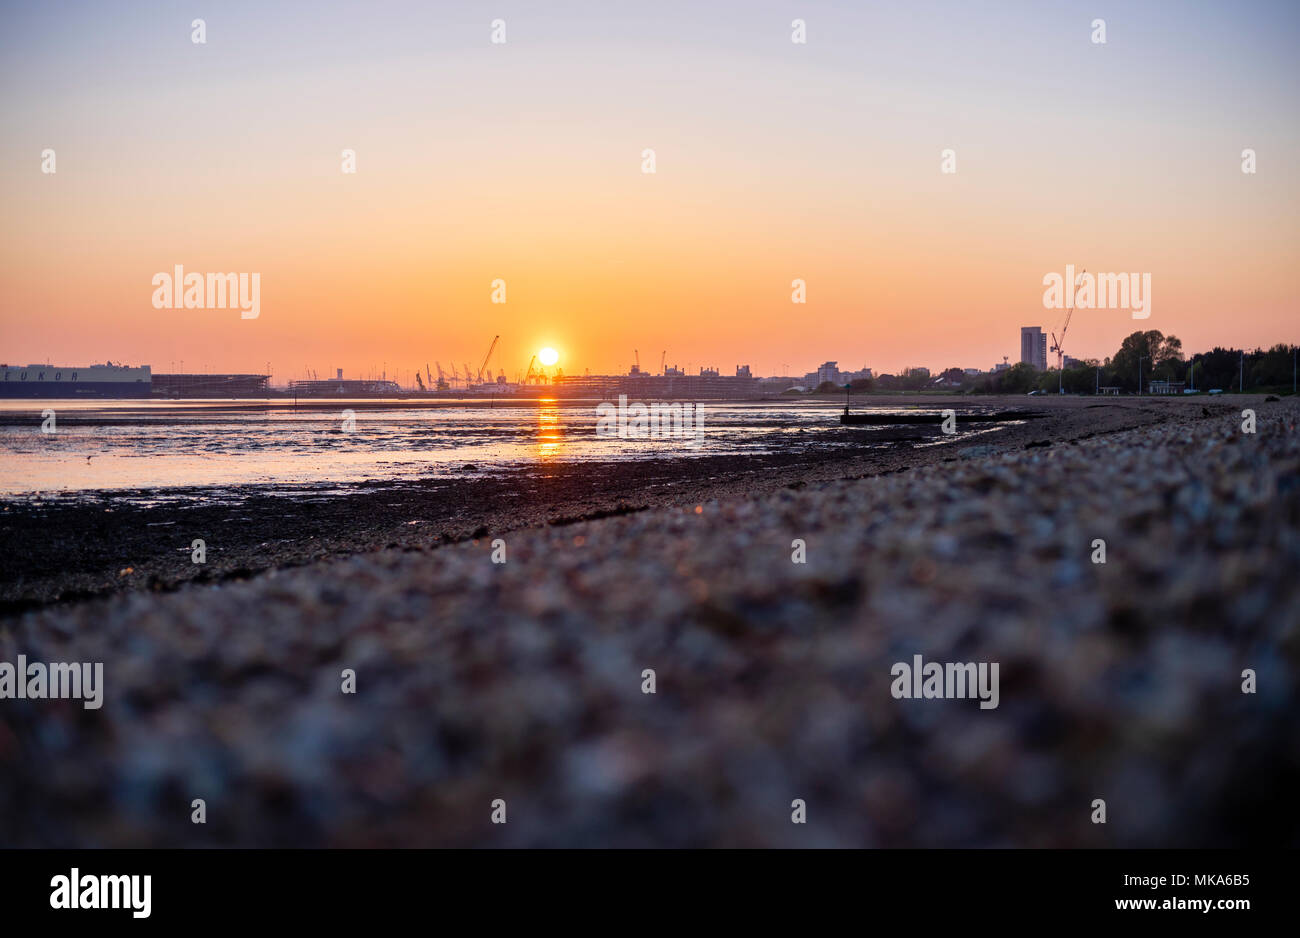 Sunset over Southampton Docks during low tide, view from Weston Shore, Hampshire, England, UK - Stock Image